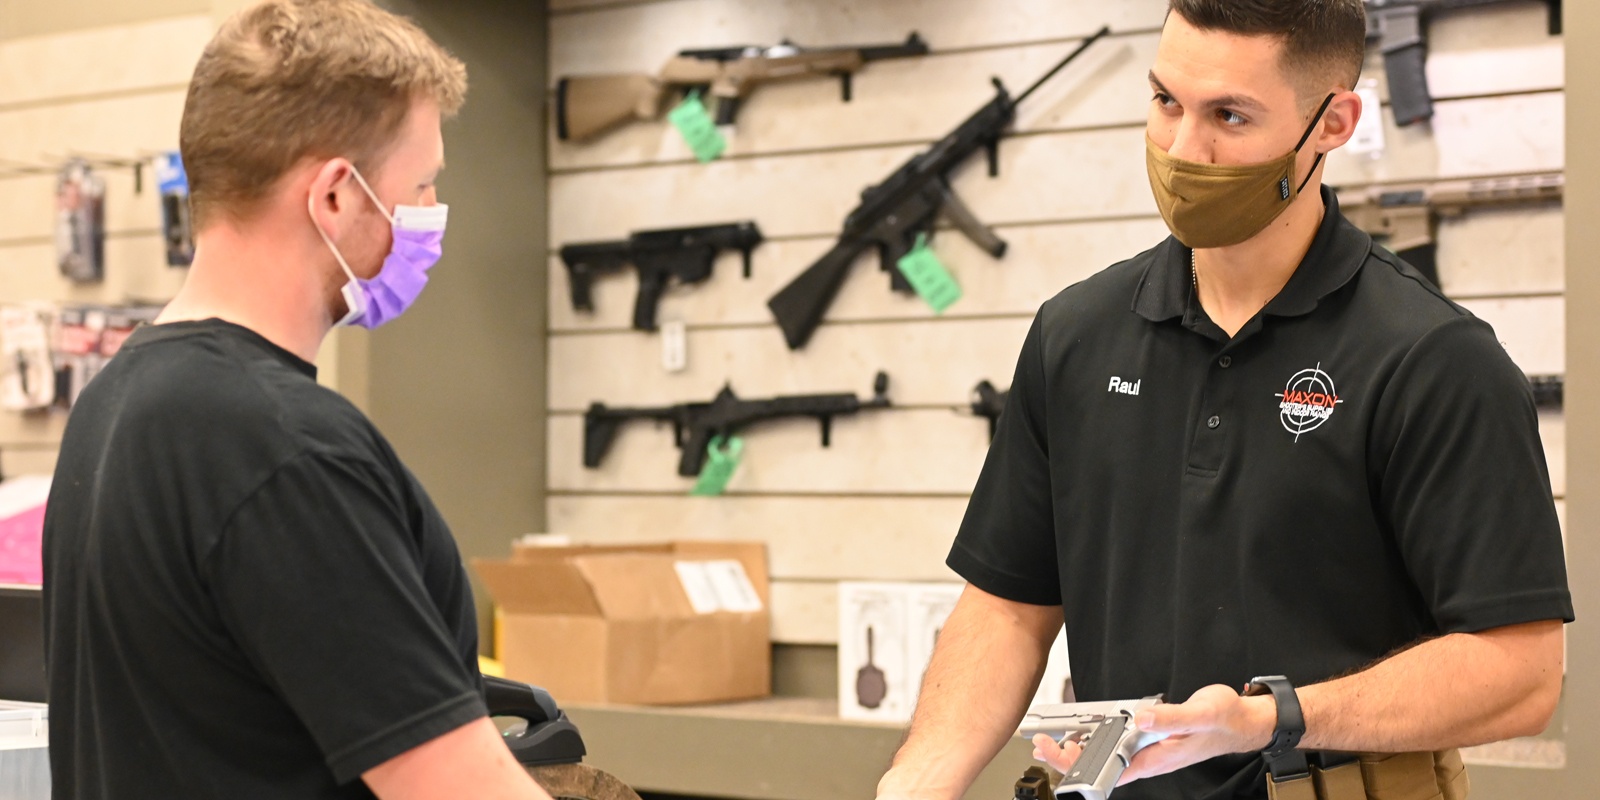 Bad Reporting on Illinois Gun Sales by CNN